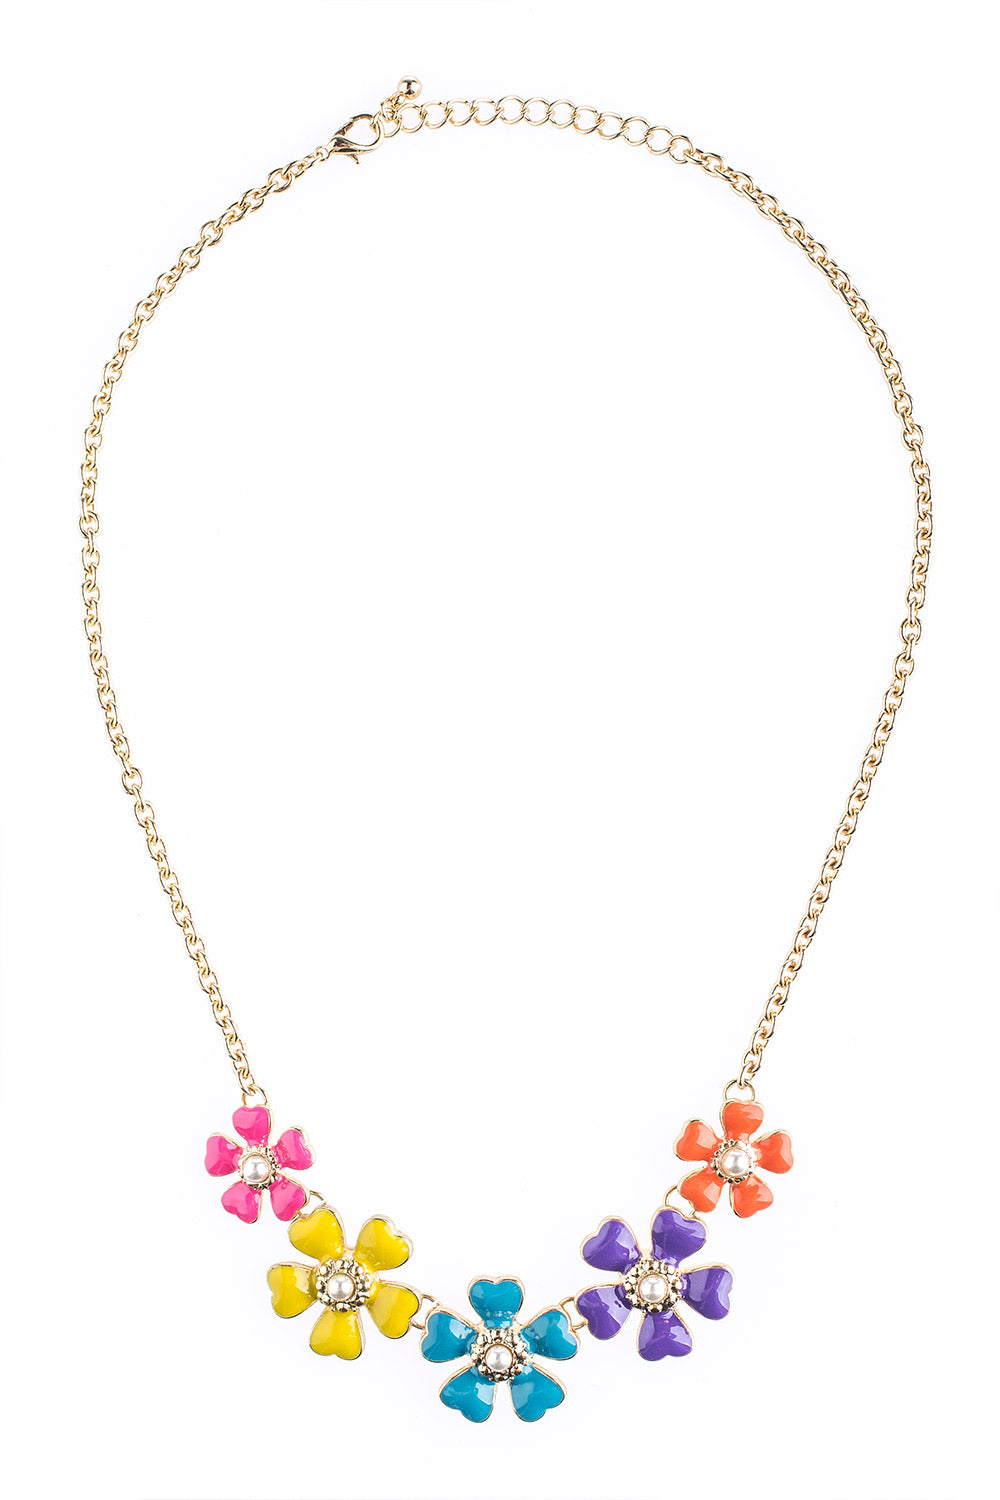 Type 1 Friendly Flowers Necklace